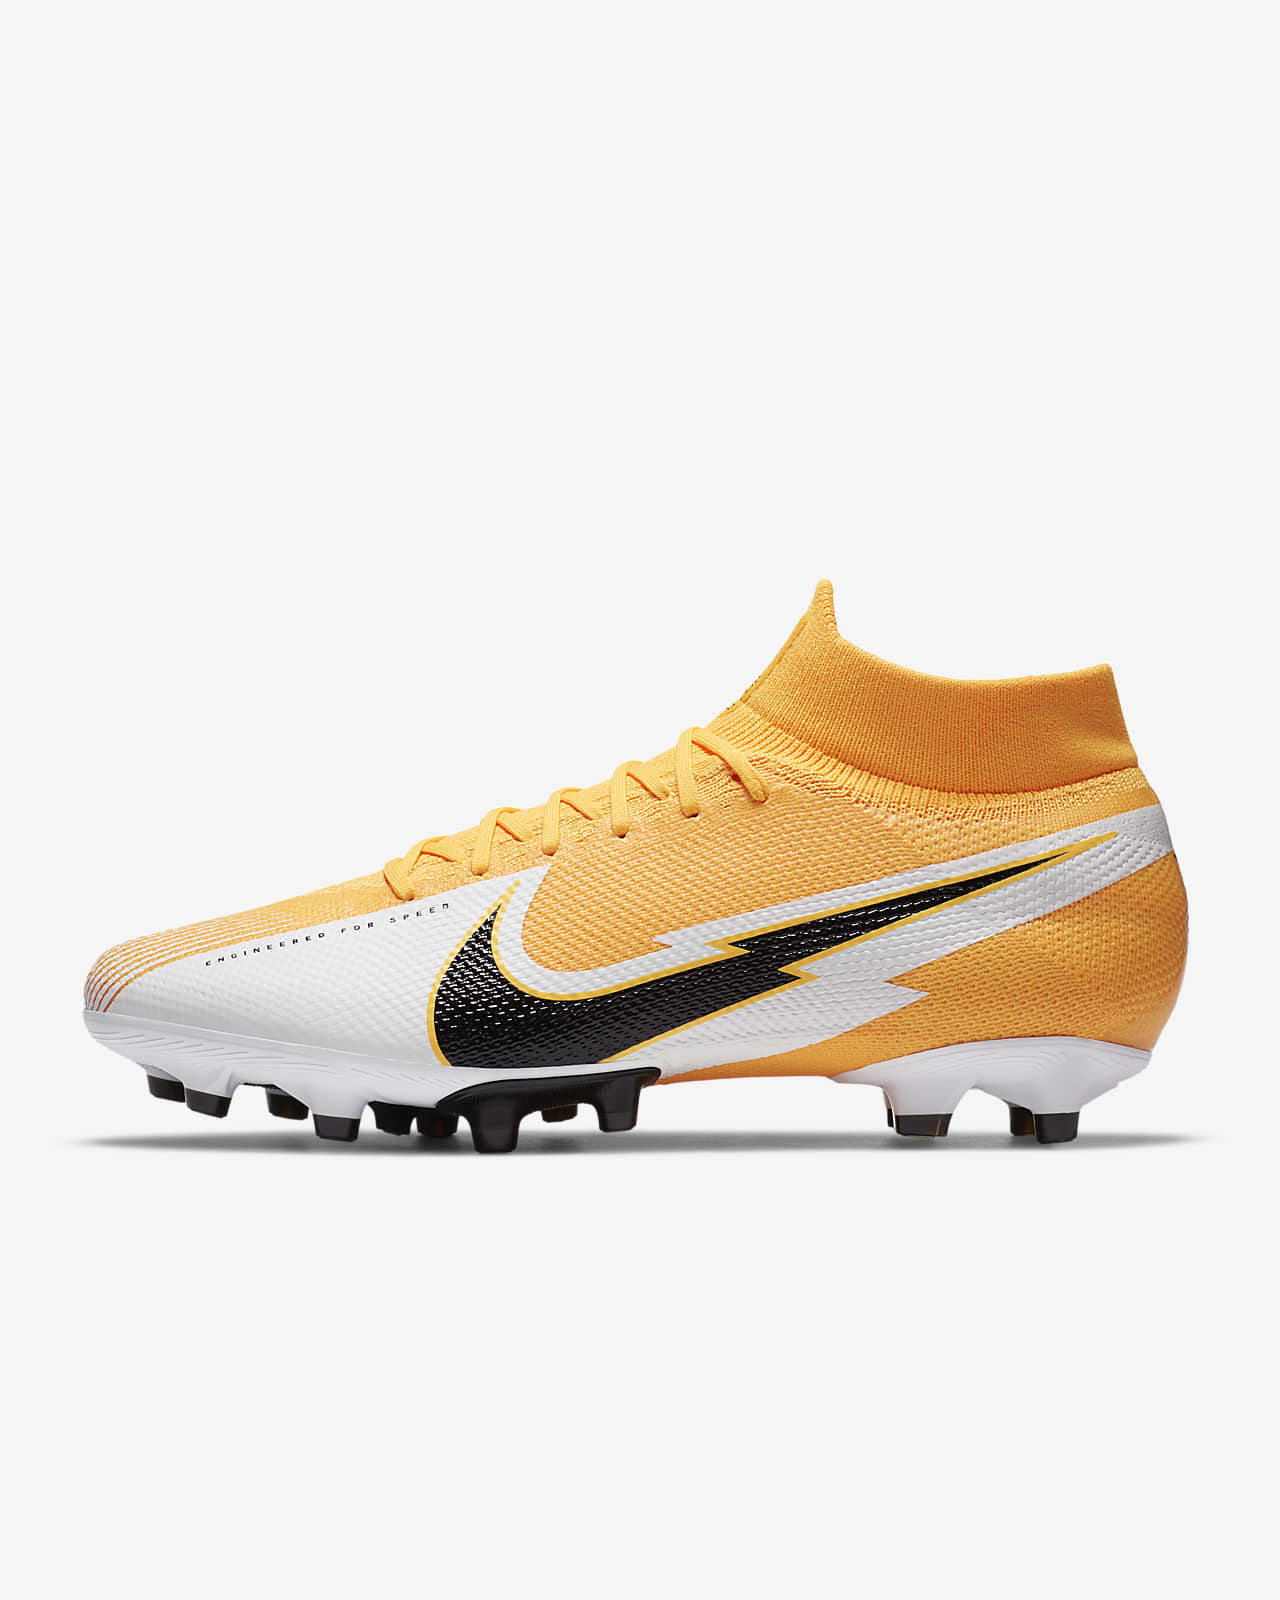 Nike Mercurial Superfly 7 Pro AG-PRO Artificial-Grass Football Boot